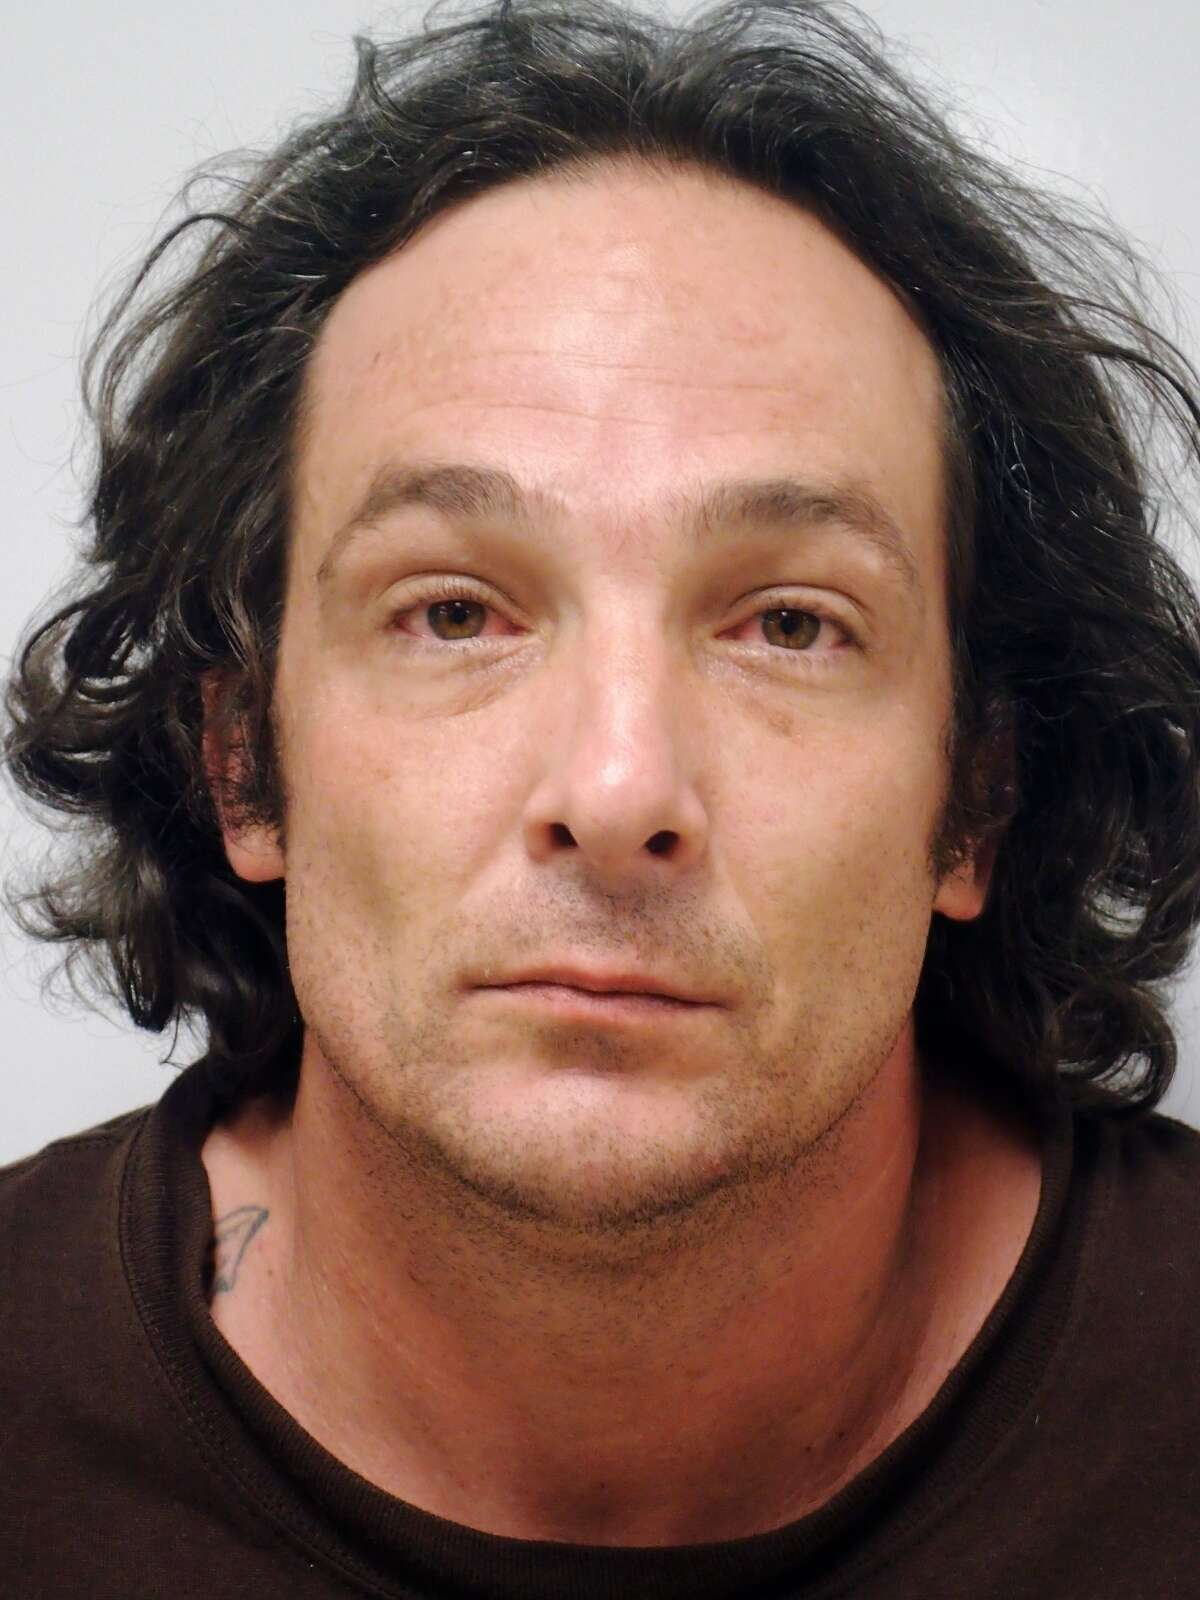 Damin Pashilk, 40, of Clearlake has been arrested for allegedly starting the Clayton Fire in Lower Lake, Calif.